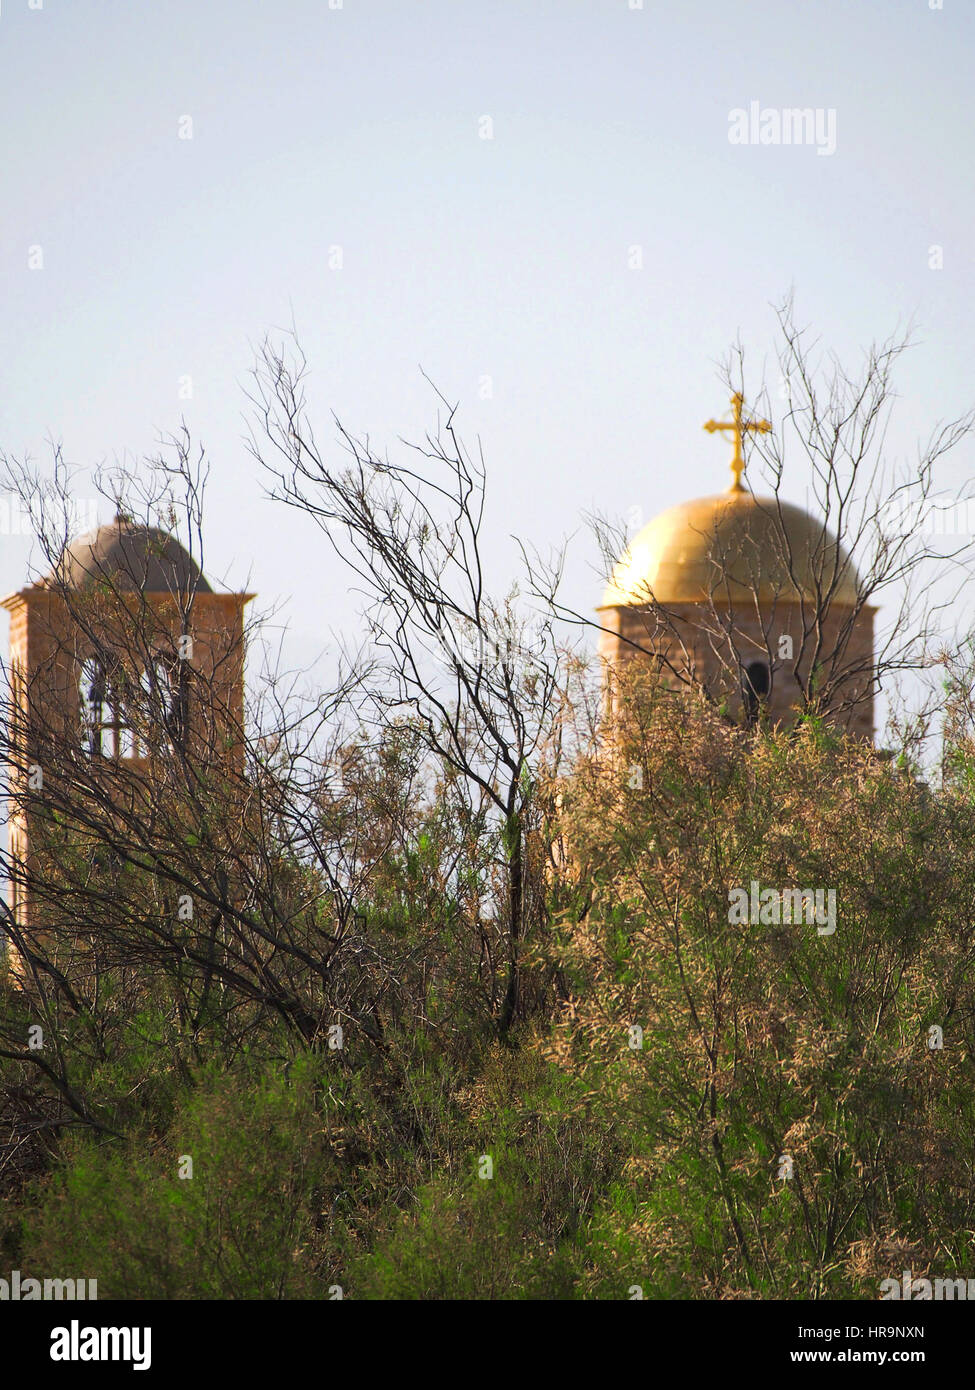 The gold dome and cross of an orthodox church at the holy site of Bethany Beyond the Jordan. Stock Photo